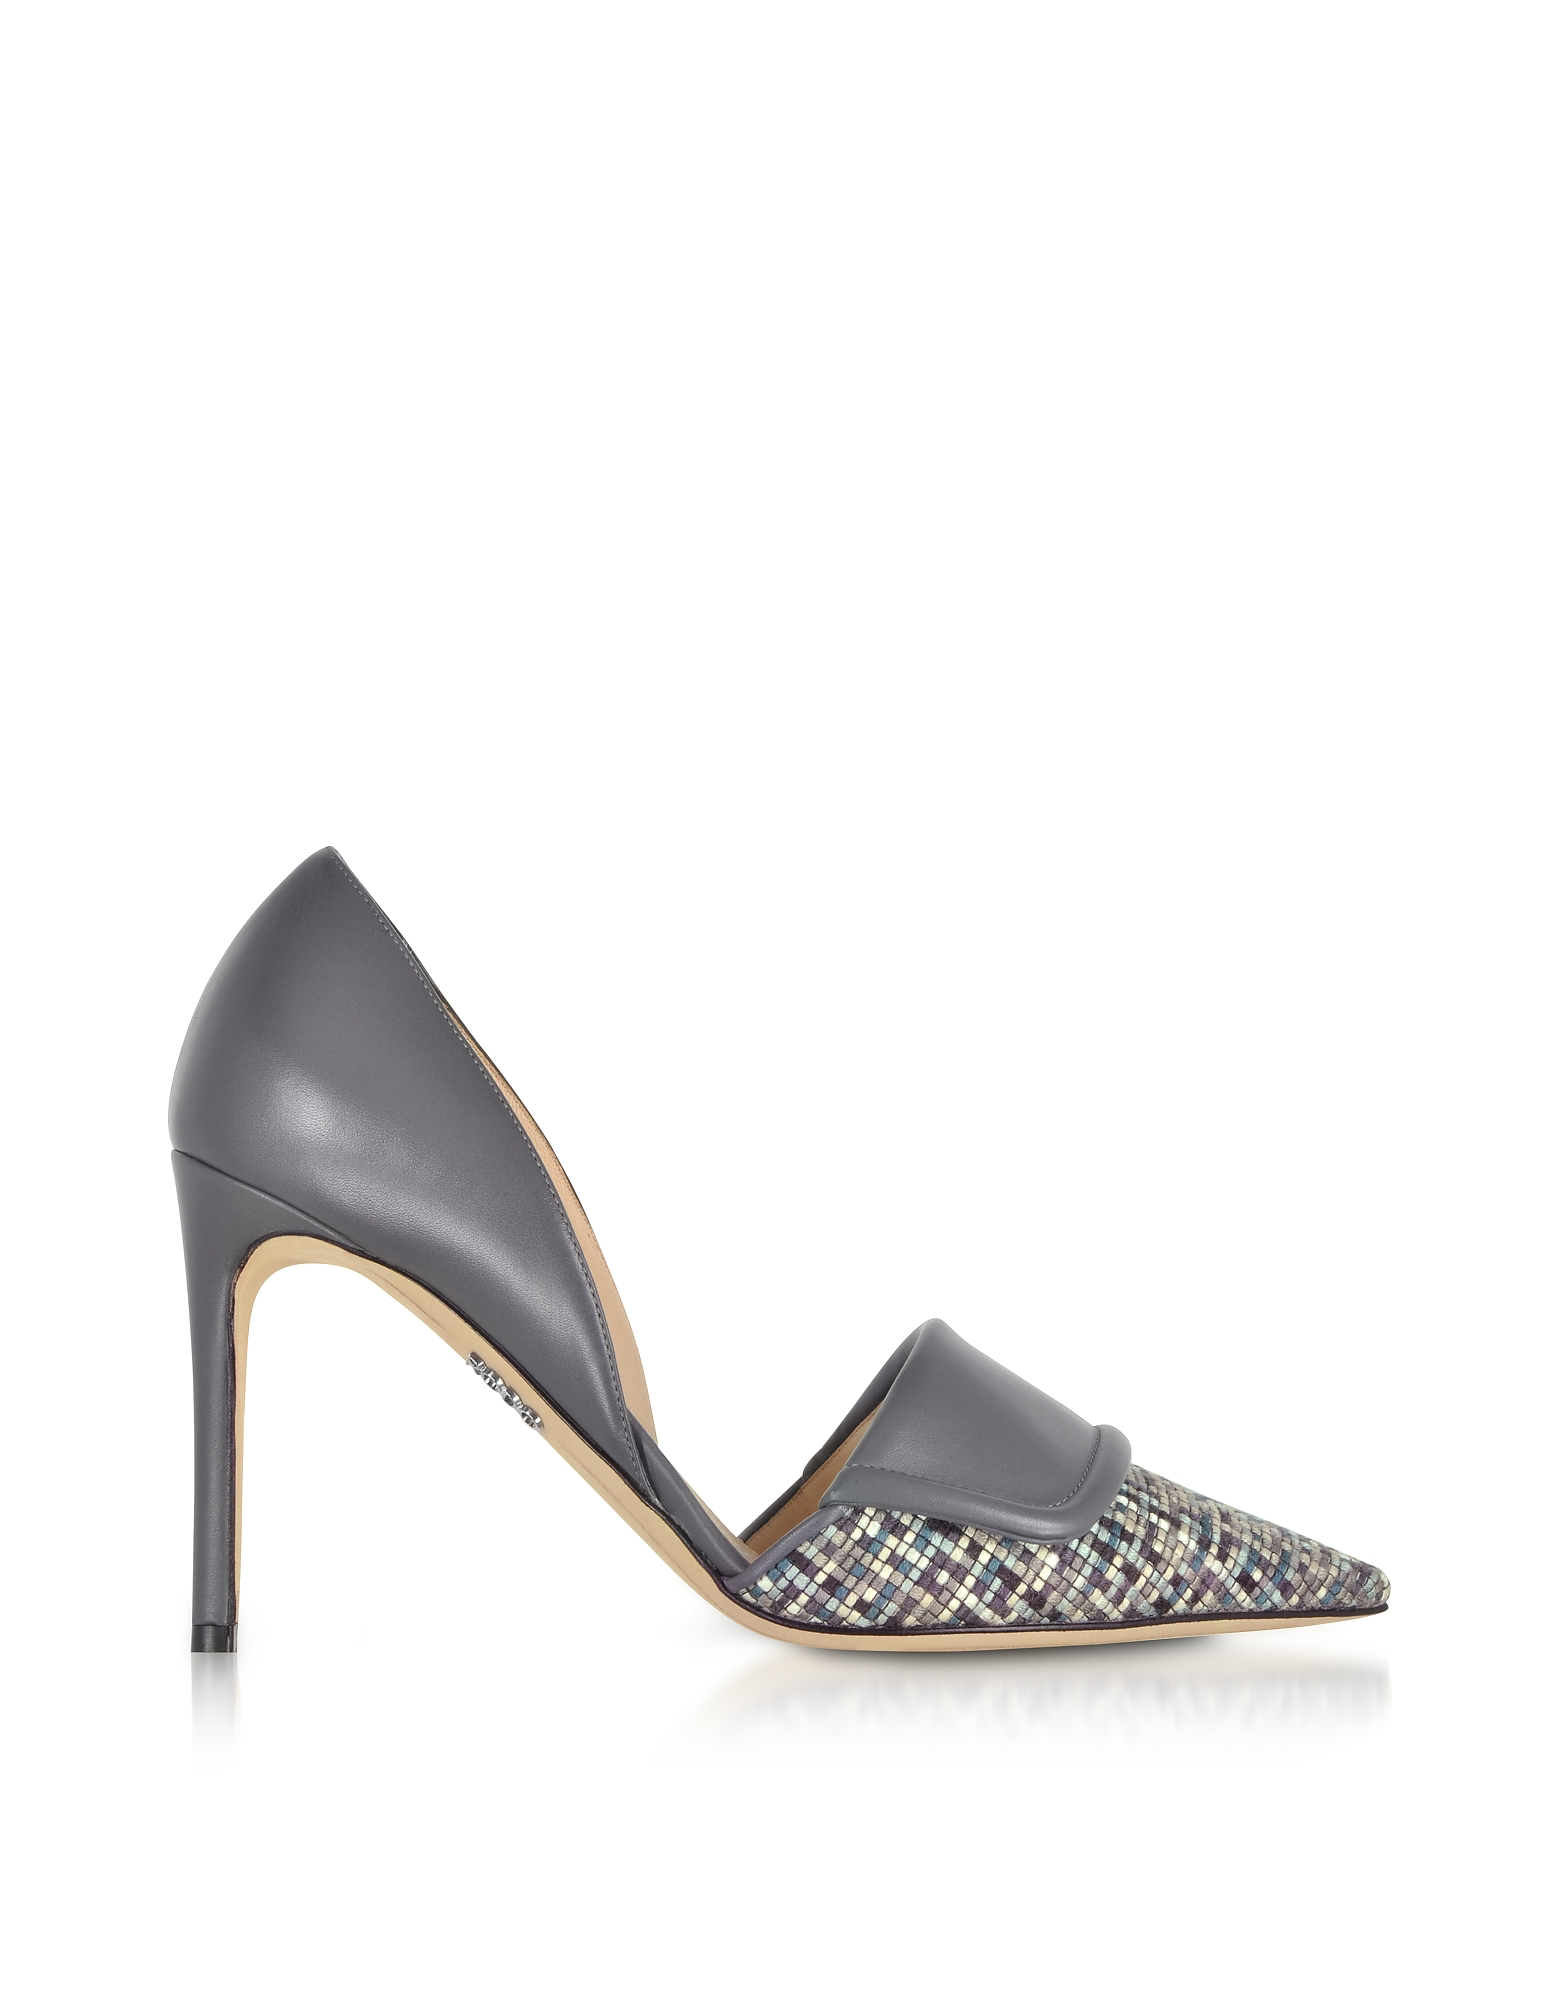 Rodo Designer Shoes, Leather and Tweed High Heel Pumps